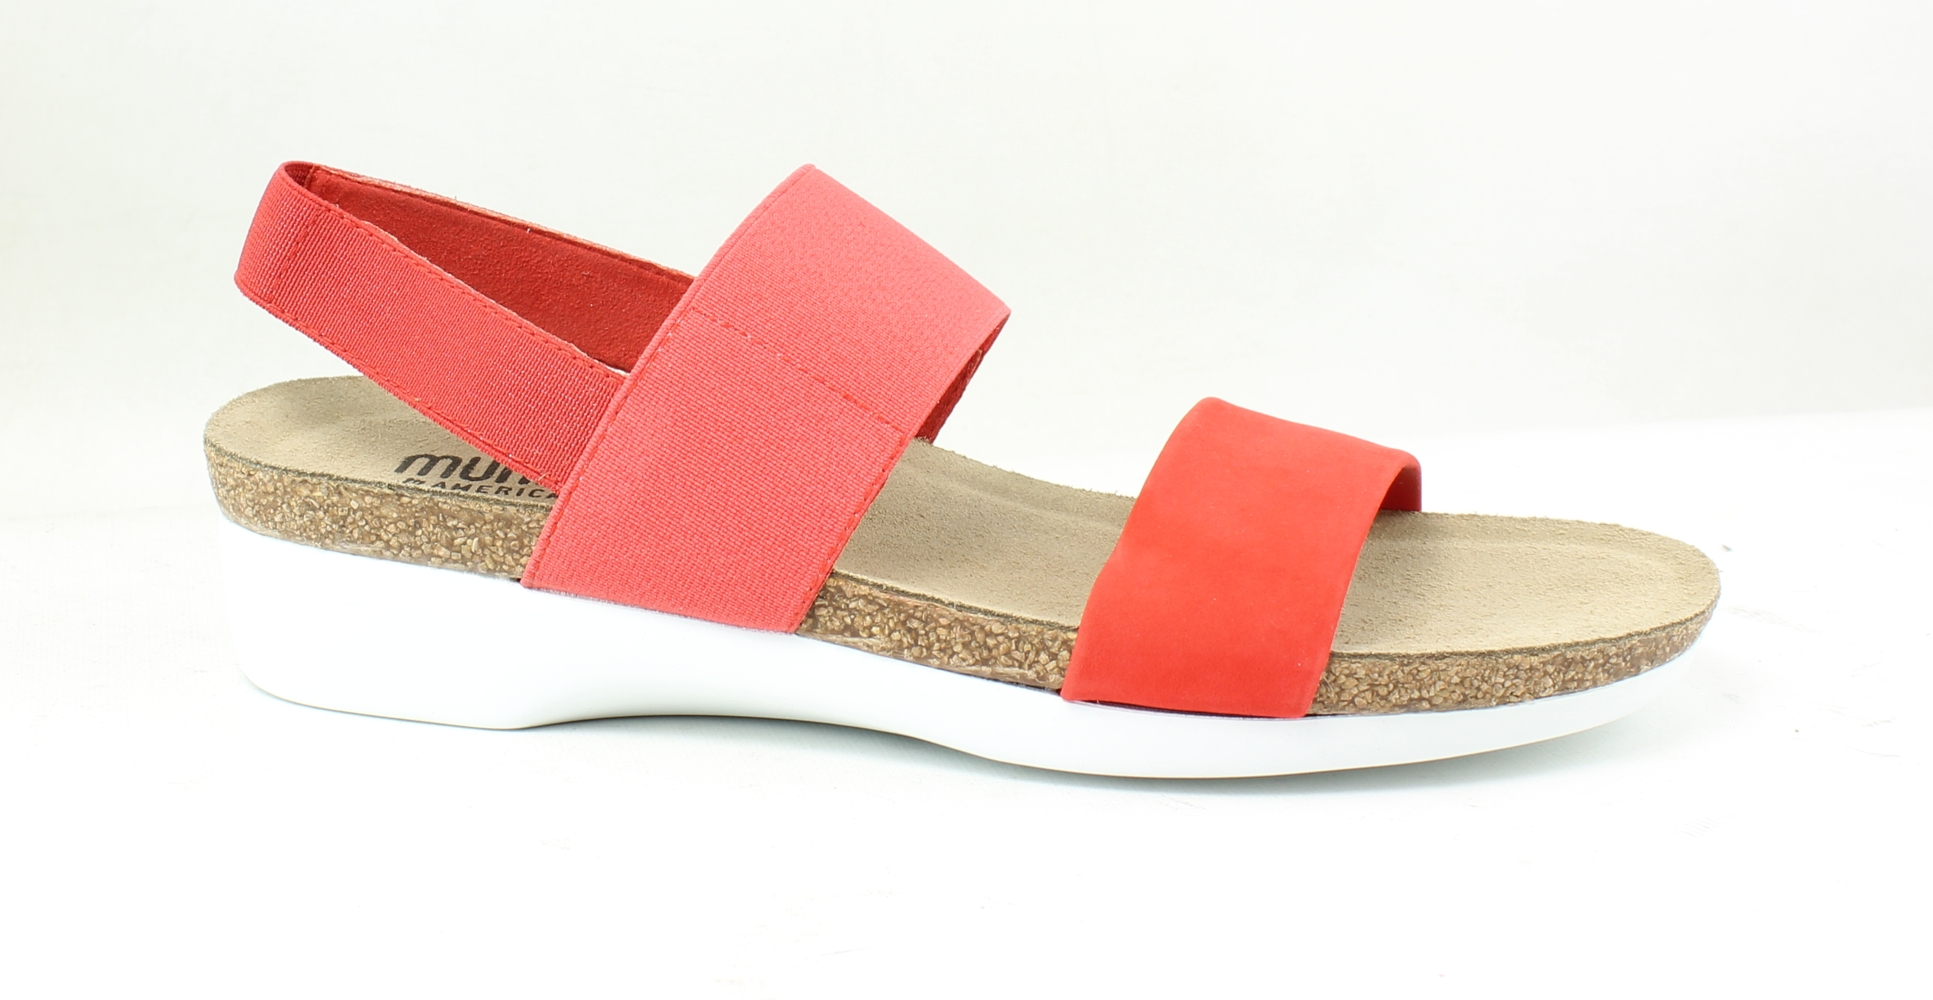 d4068694d6cd Munro Womens Pisces Red Ankle Strap Flats Size 7 (AA